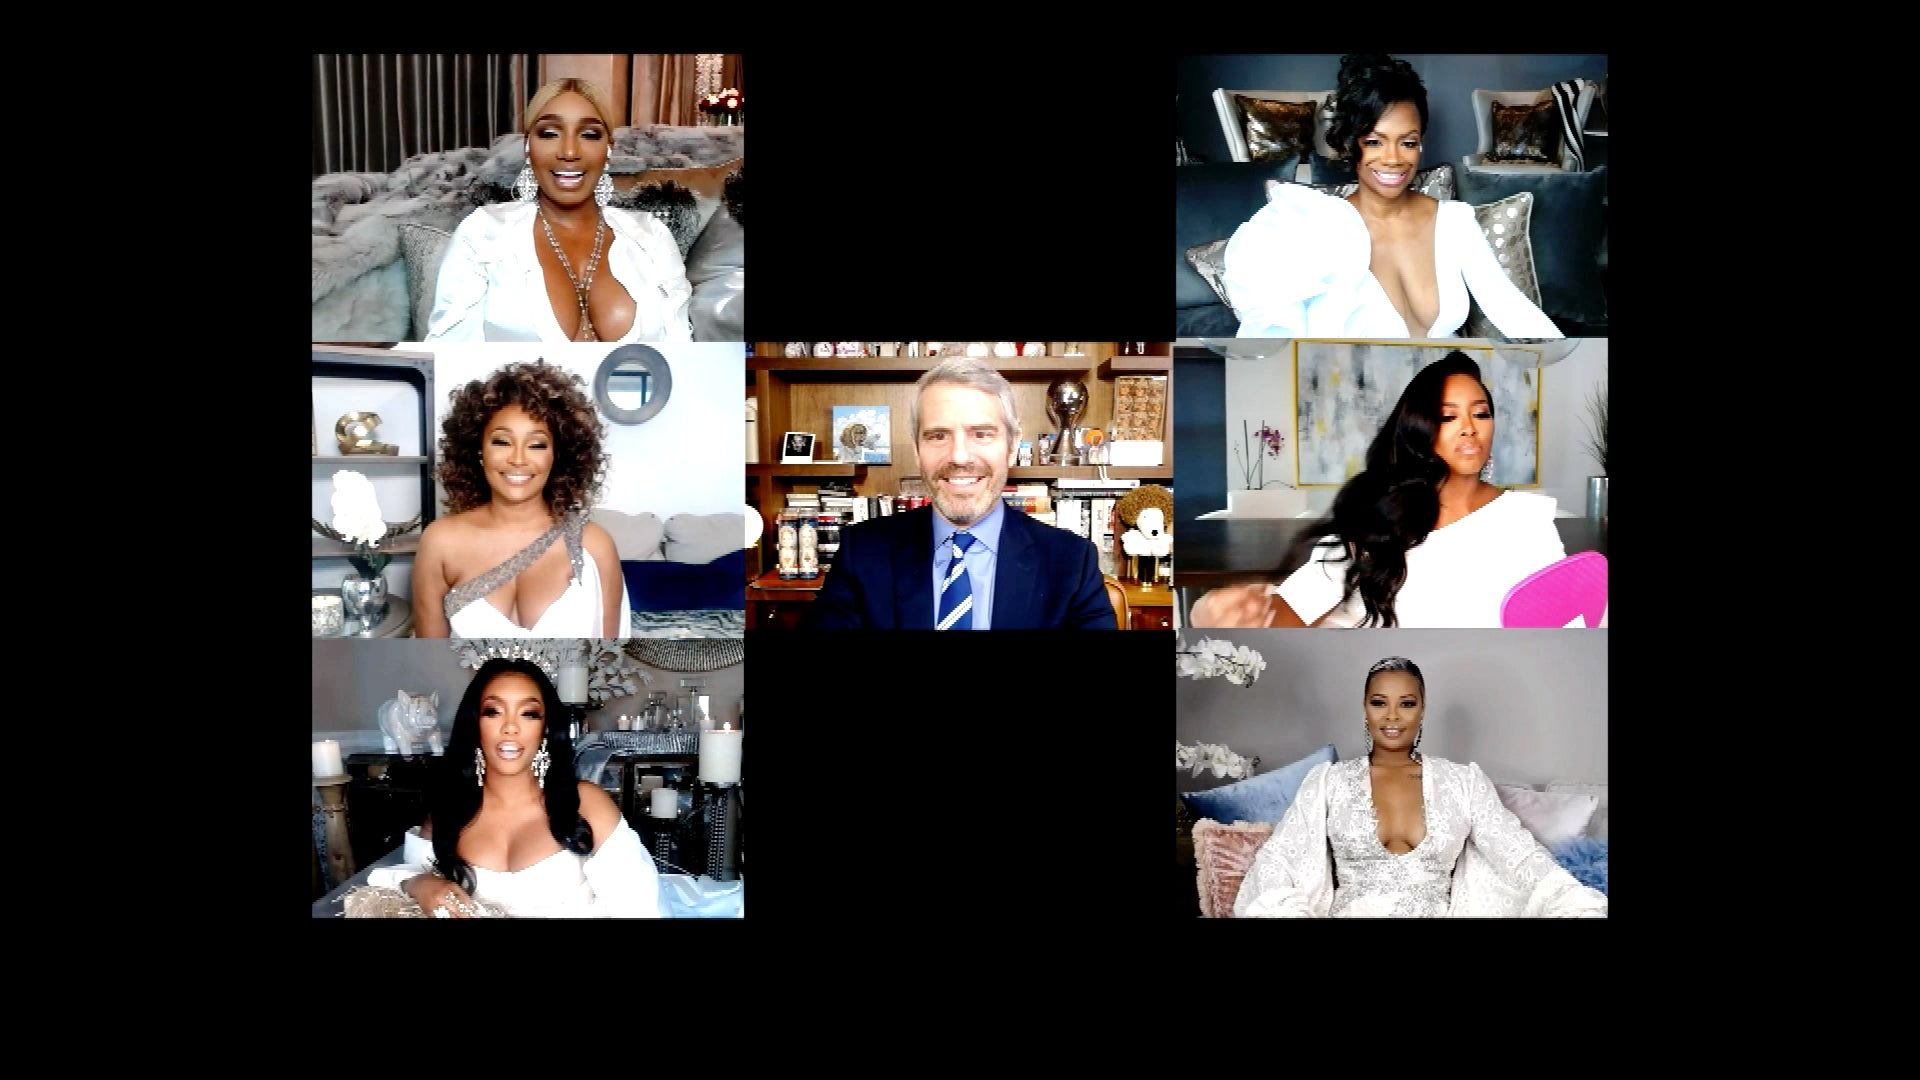 RHOA Virtual Reunion